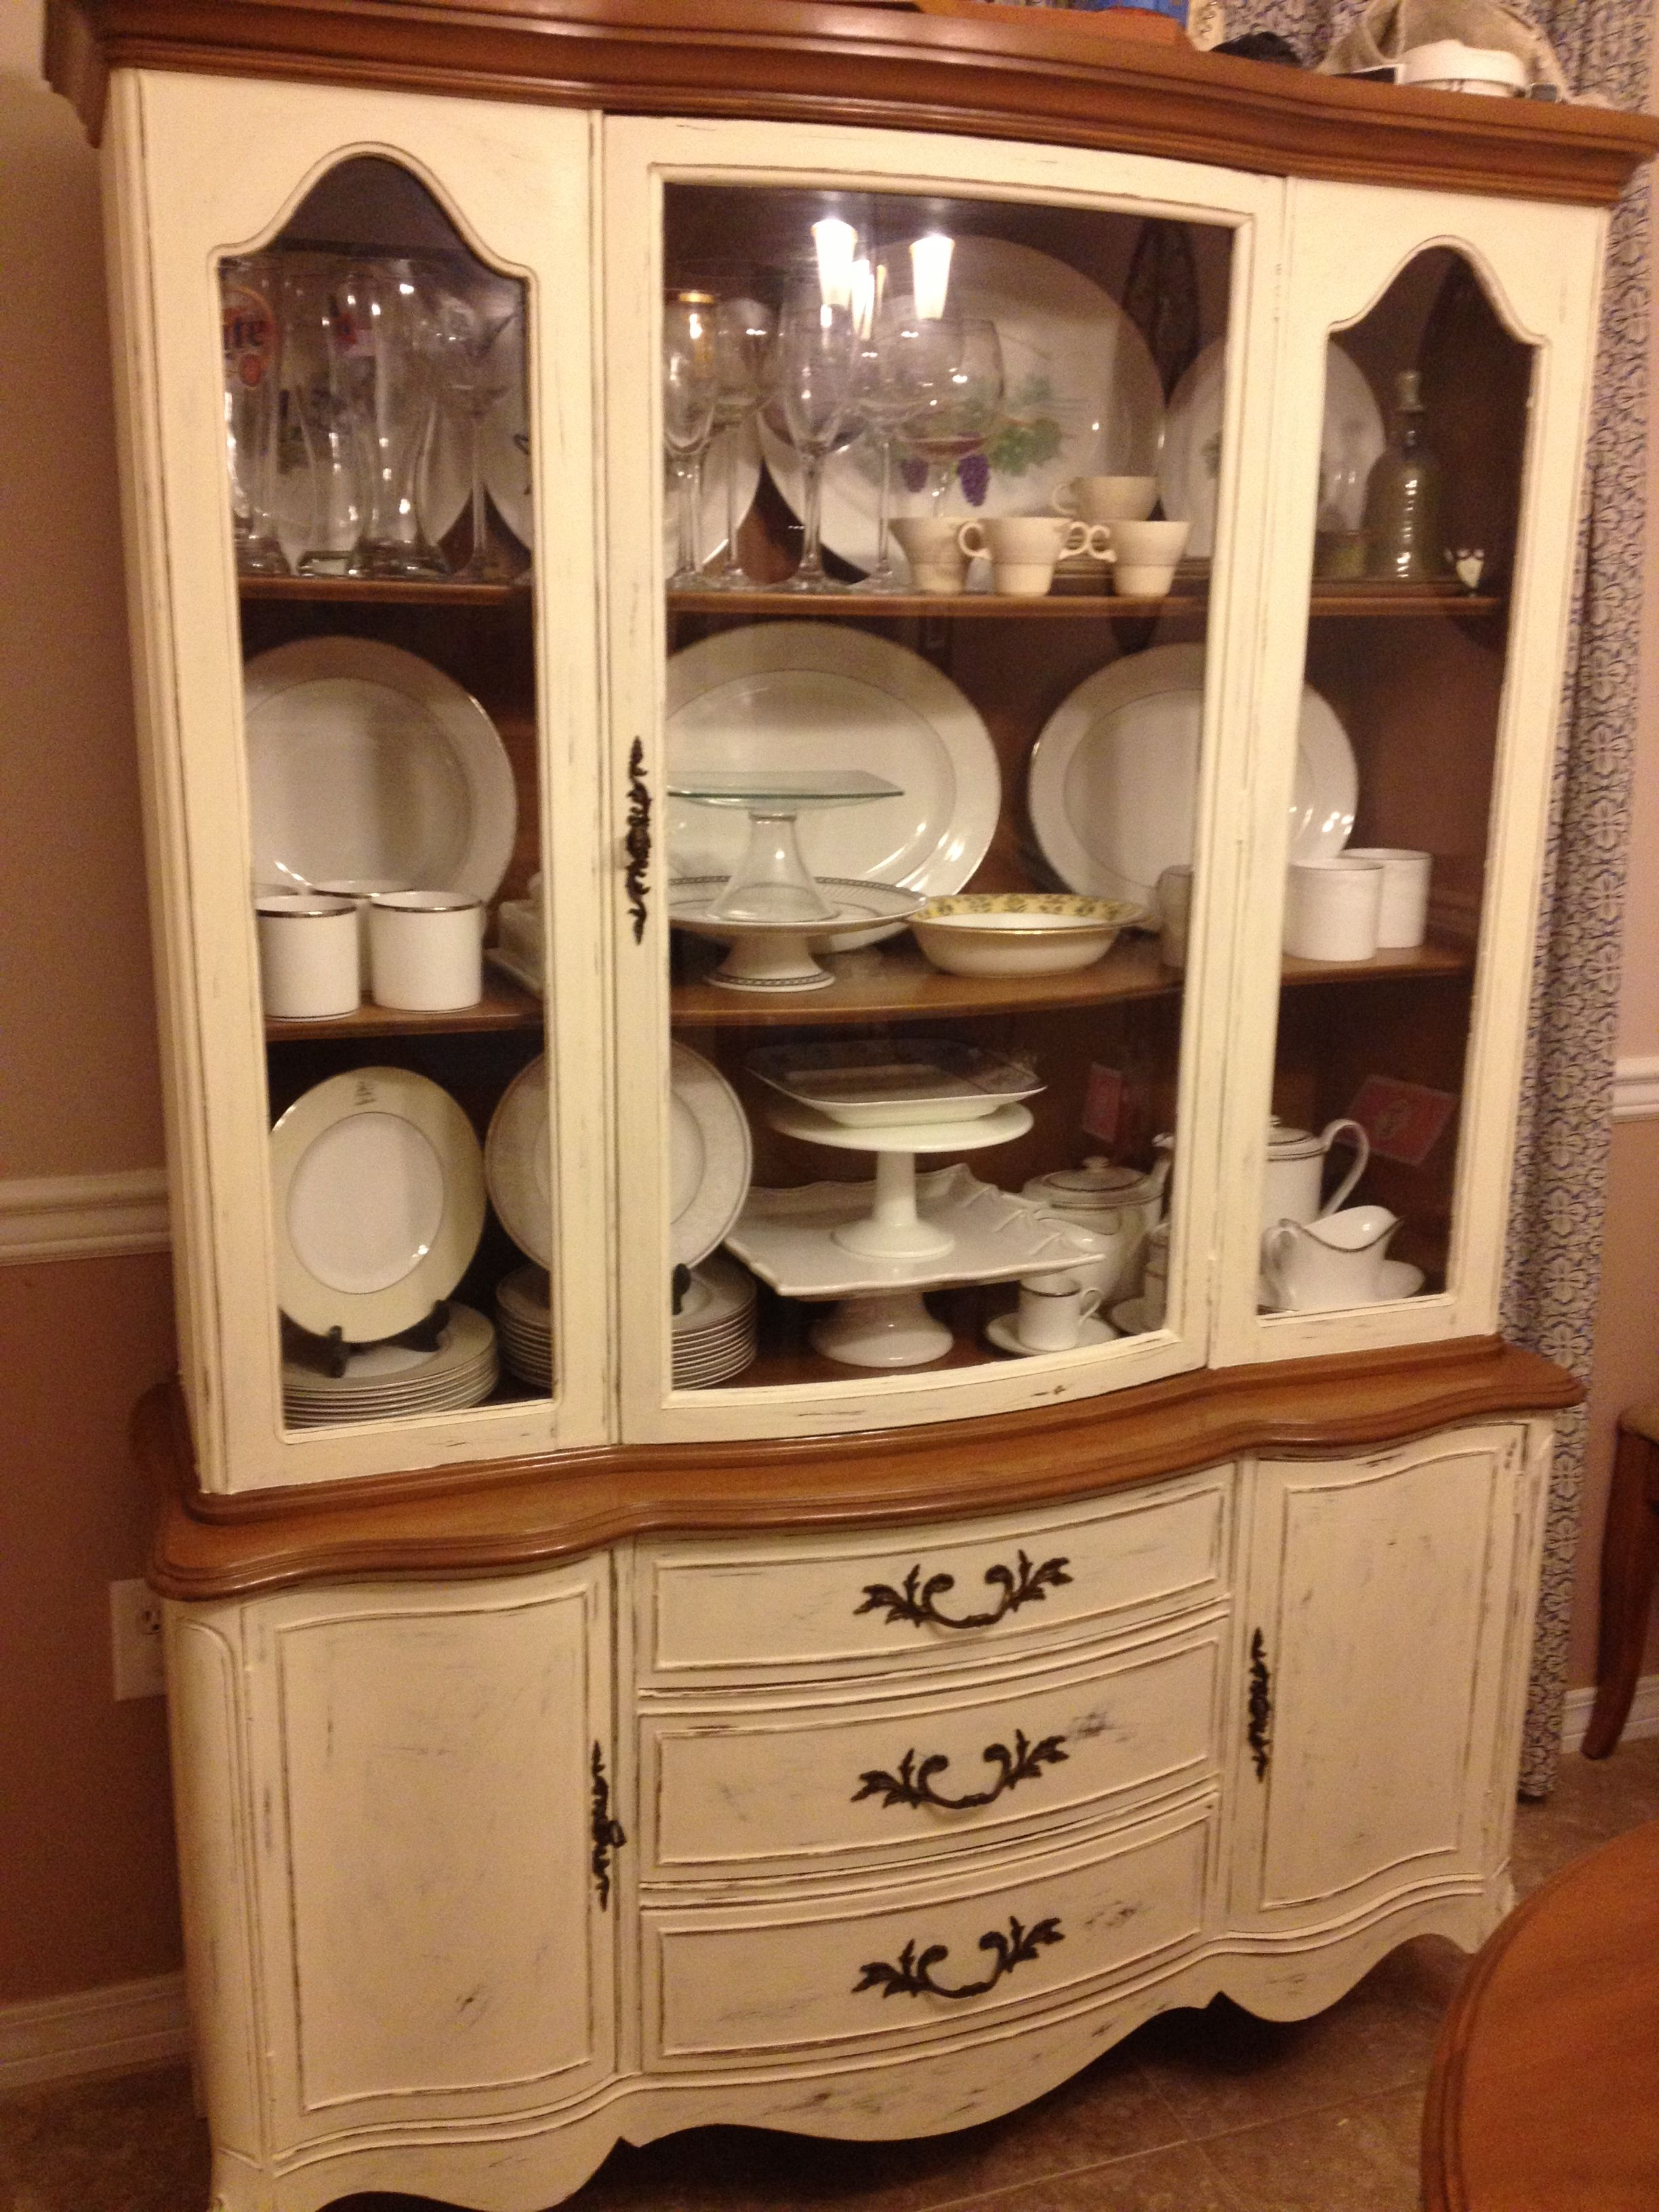 Diy Refinished And Painted Cabinet Reviews: Painted China Cabinet. Painted Using Annie Sloan Chalk